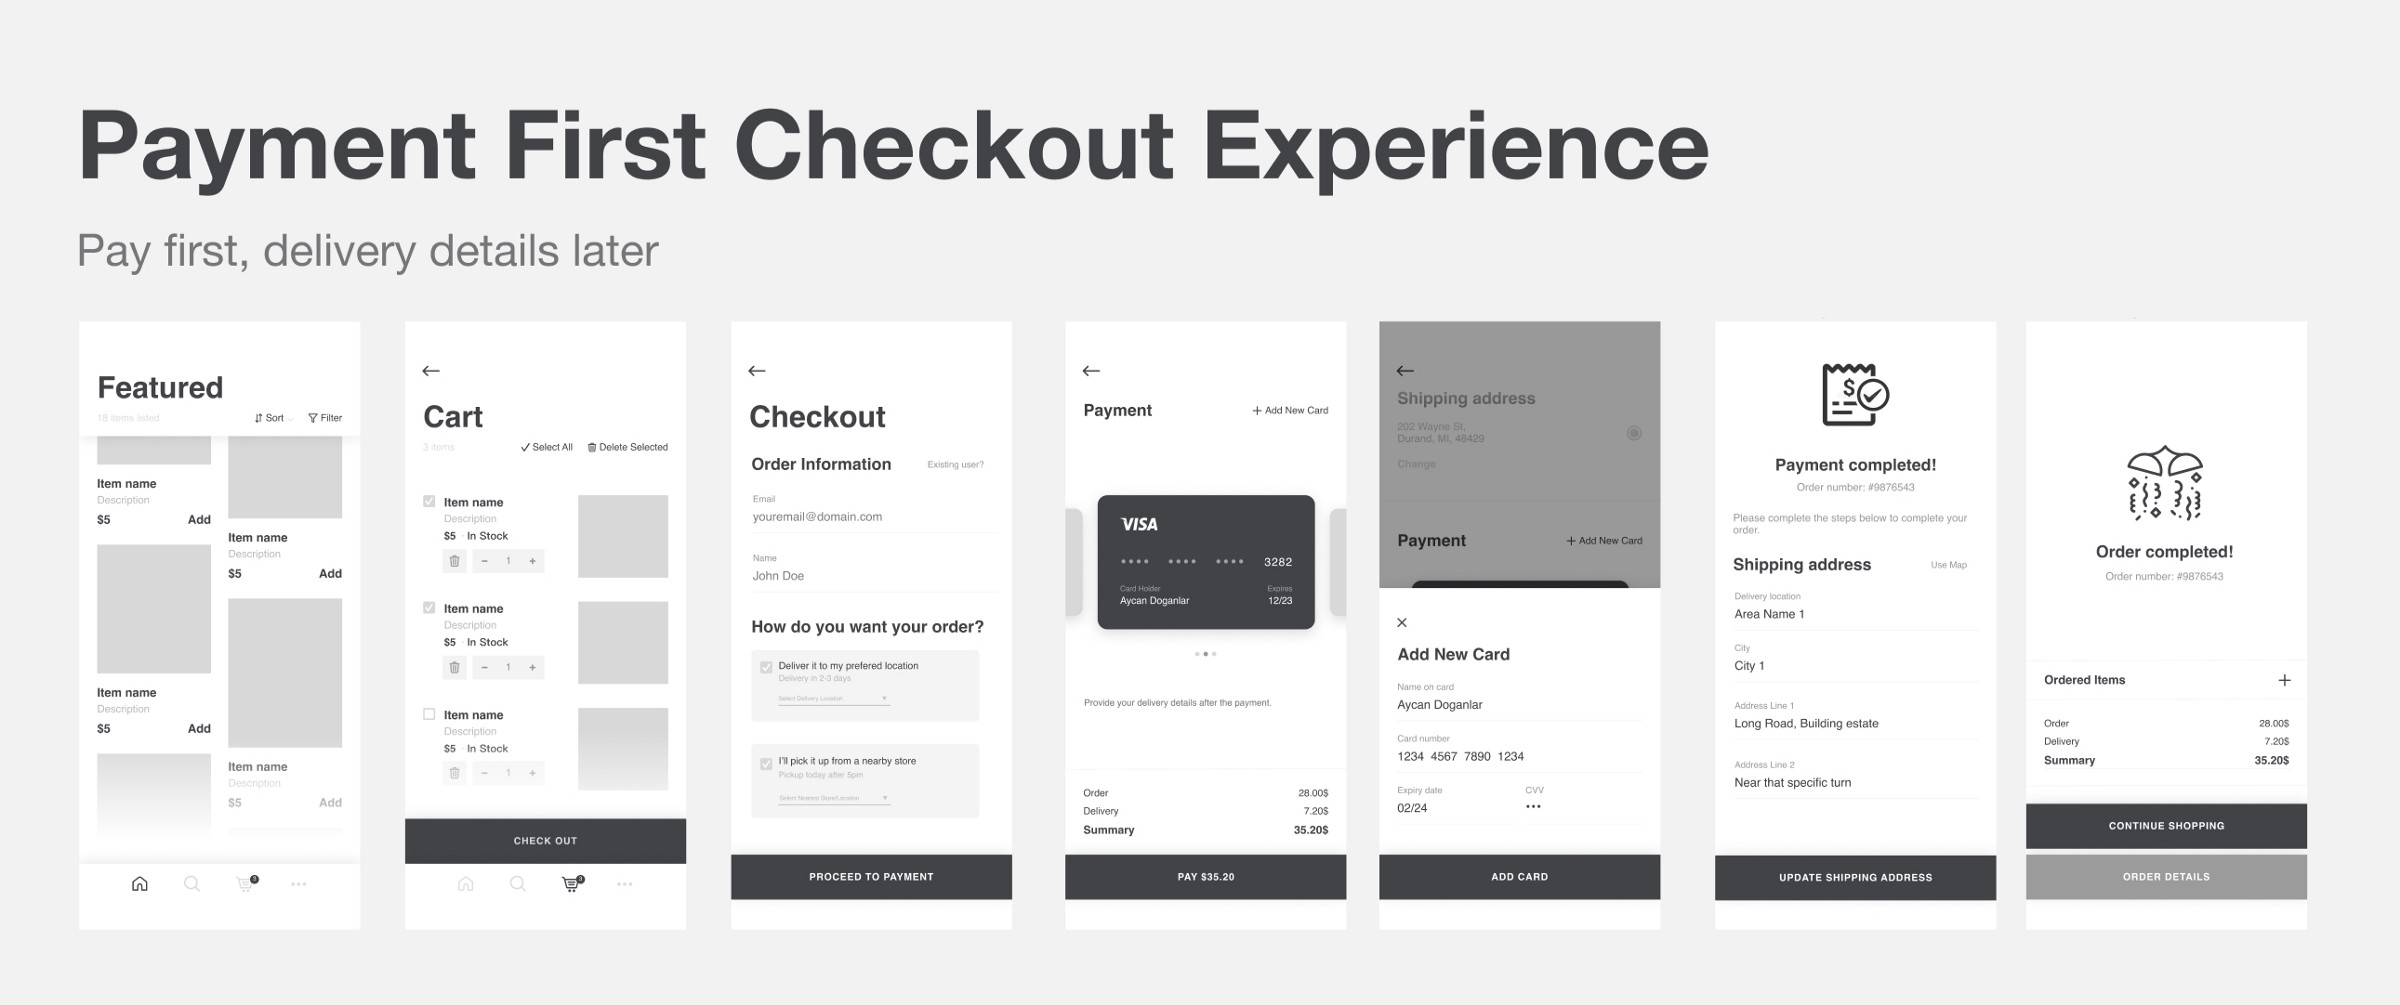 Payment-first checkout experience — a UX exploration